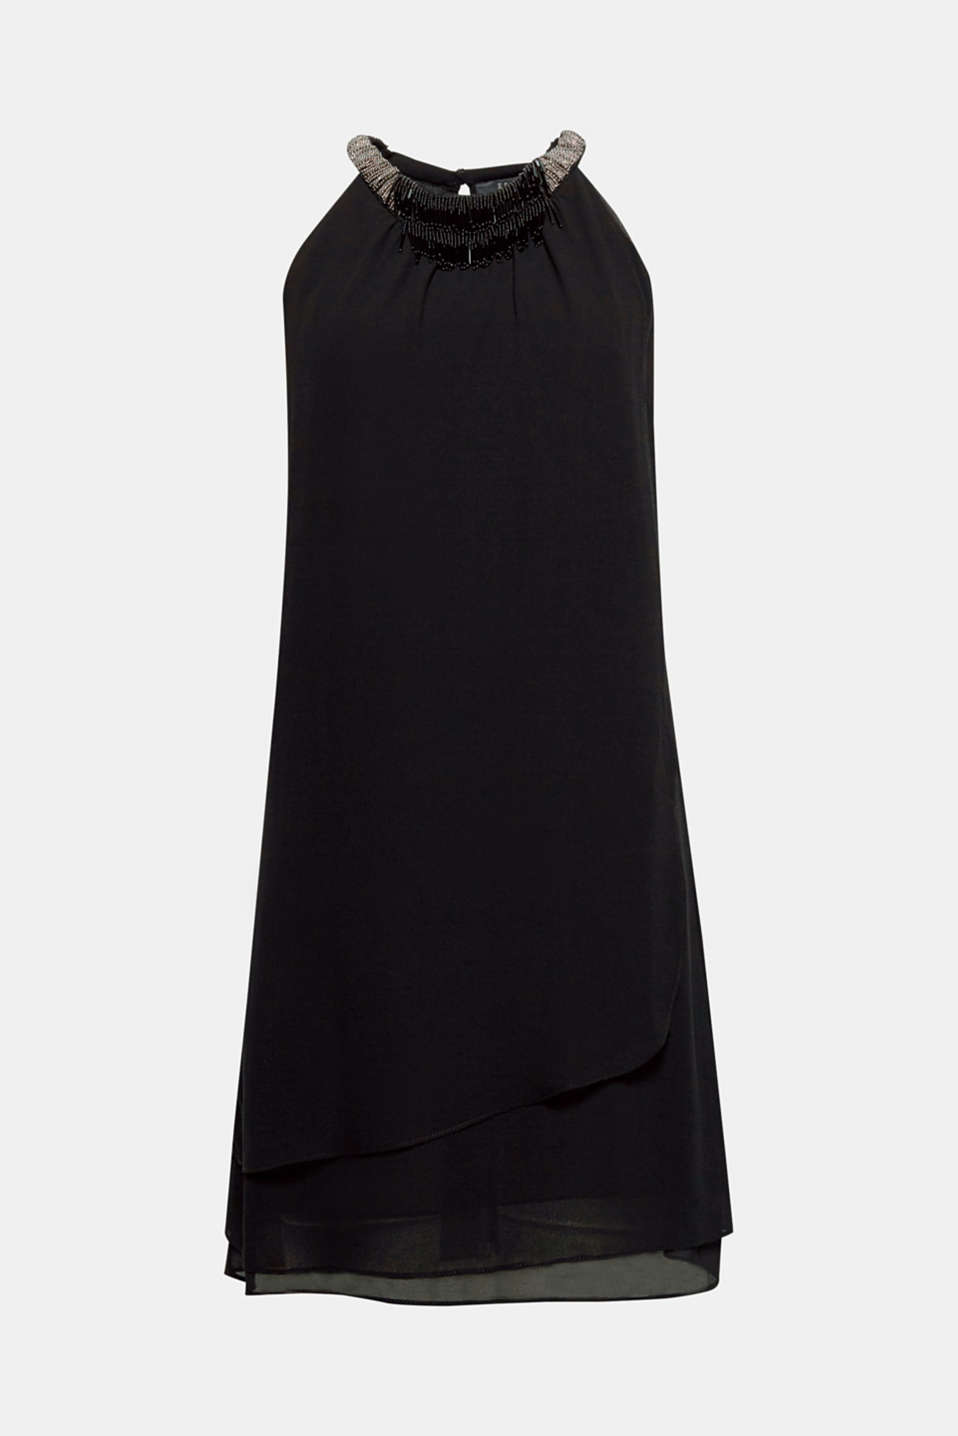 Put it on and look cool: this chiffon dress wows with its layered front section plus beads and fringing on the neckline!